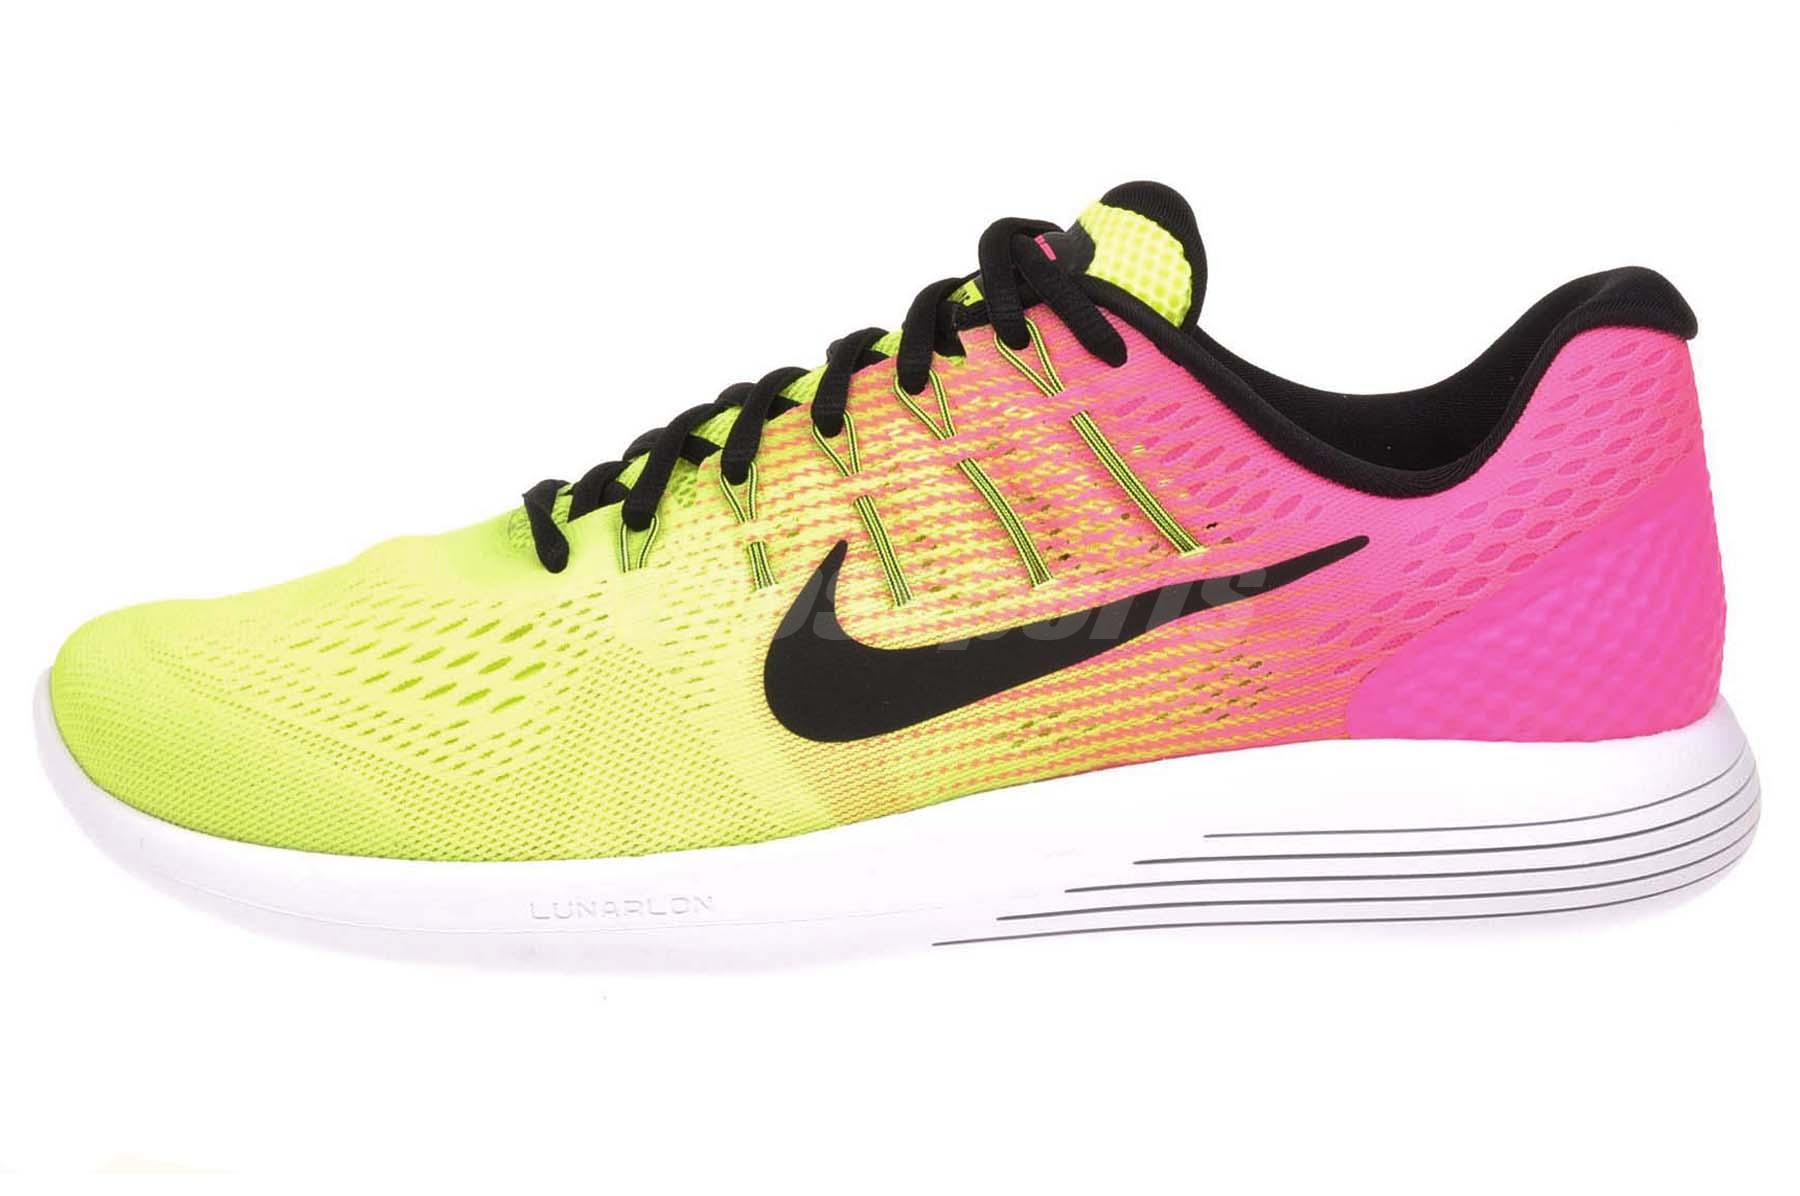 0a6bcb1c837ac1 ... Nike Lunarglide 8 OC Running Mens Shoes Multi-color Olympics 844632-999  ...